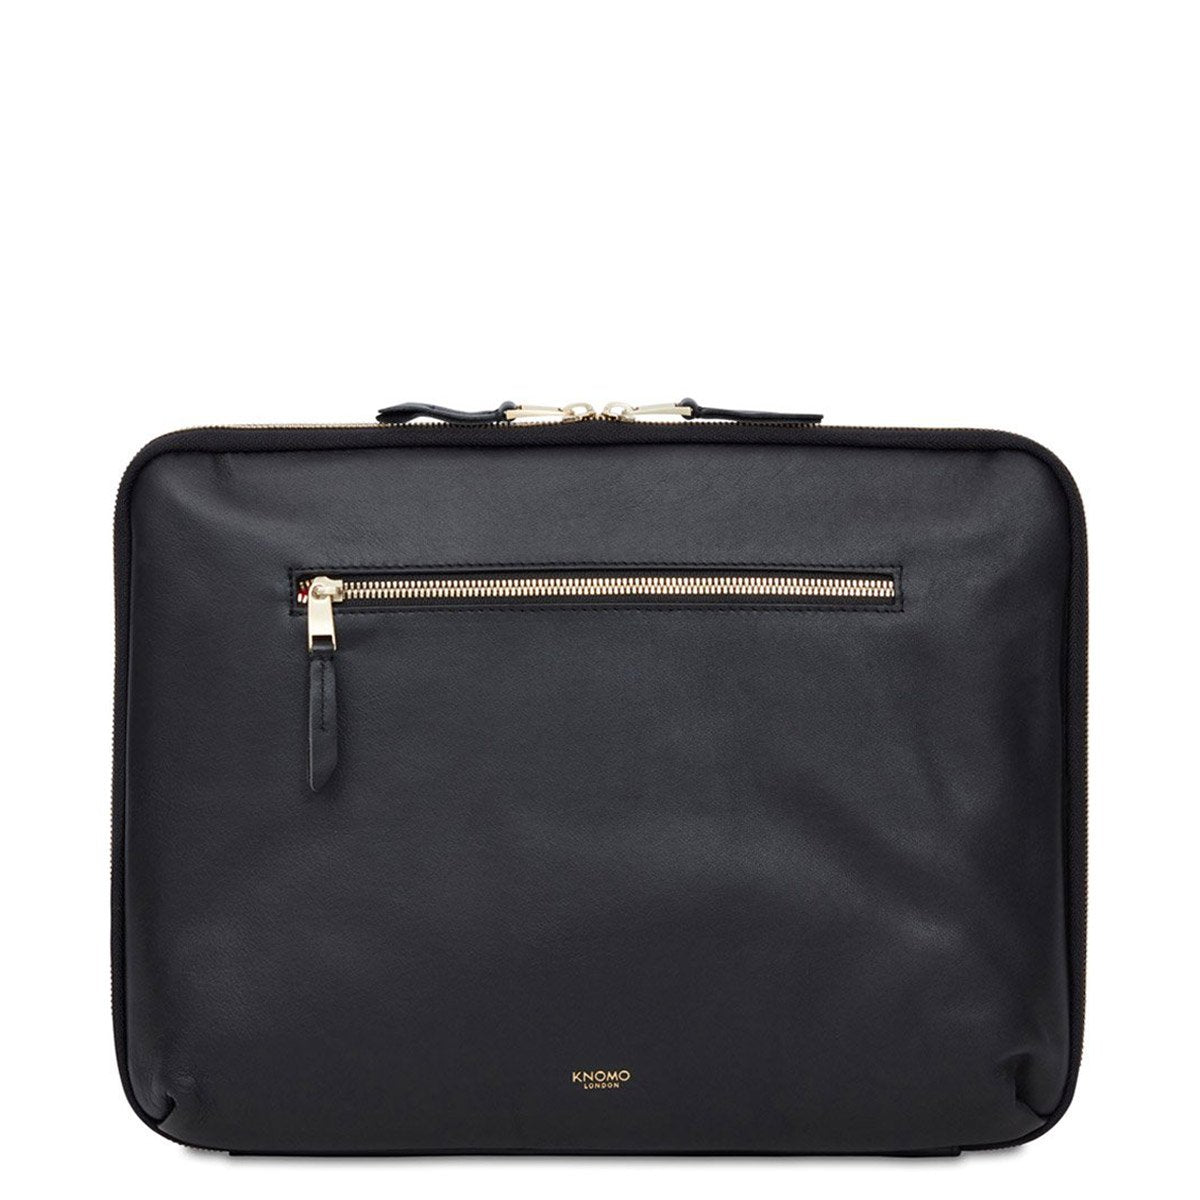 Knomad 13inch black leather